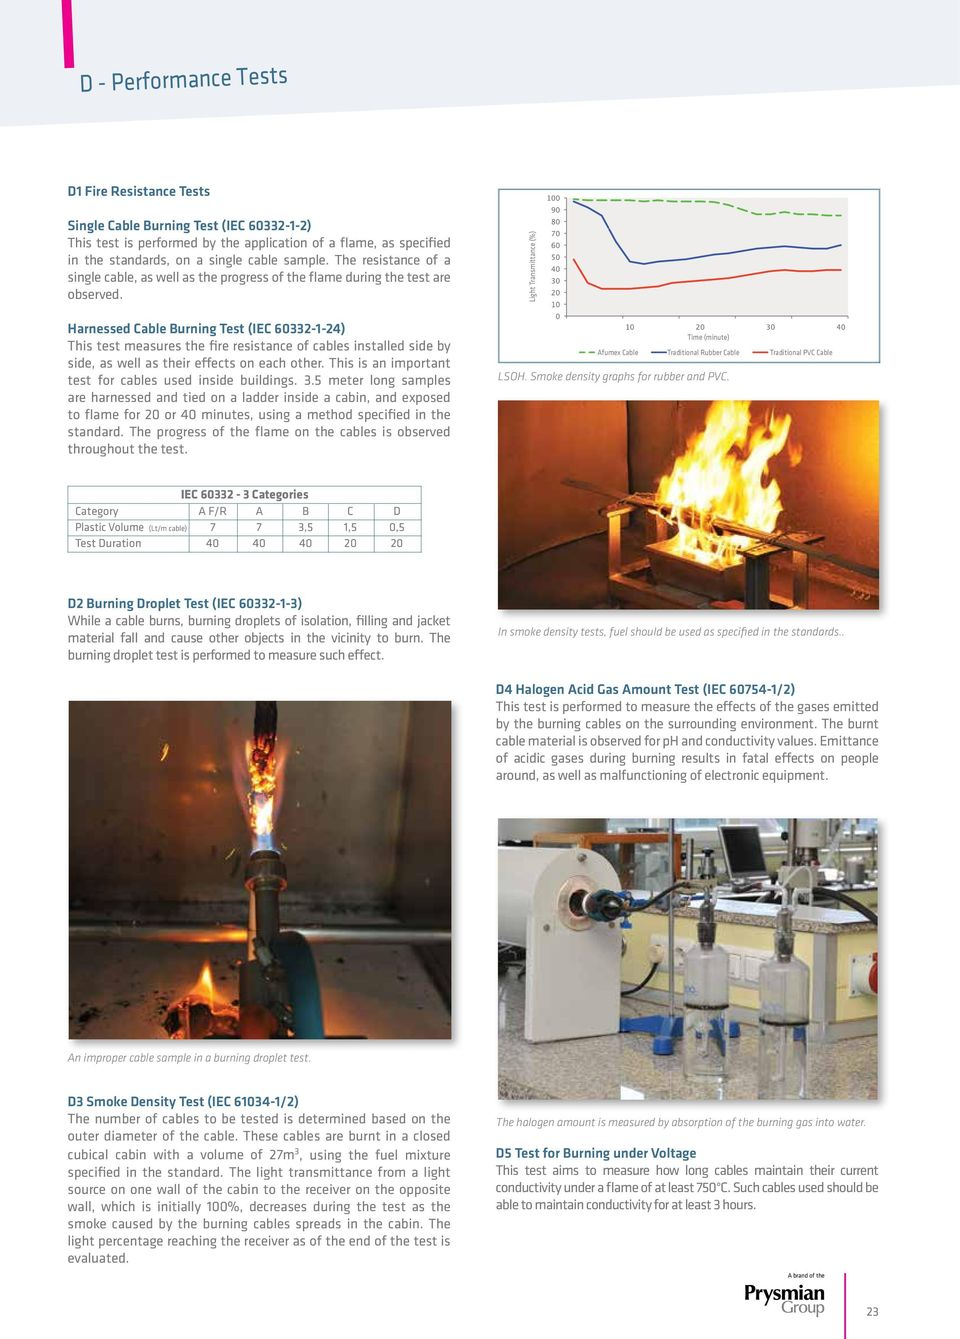 Harnessed Cable Burning Test (IEC 60332-1-24) This test measures the fire resistance of cables installed side by side, as well as their effects on each other.